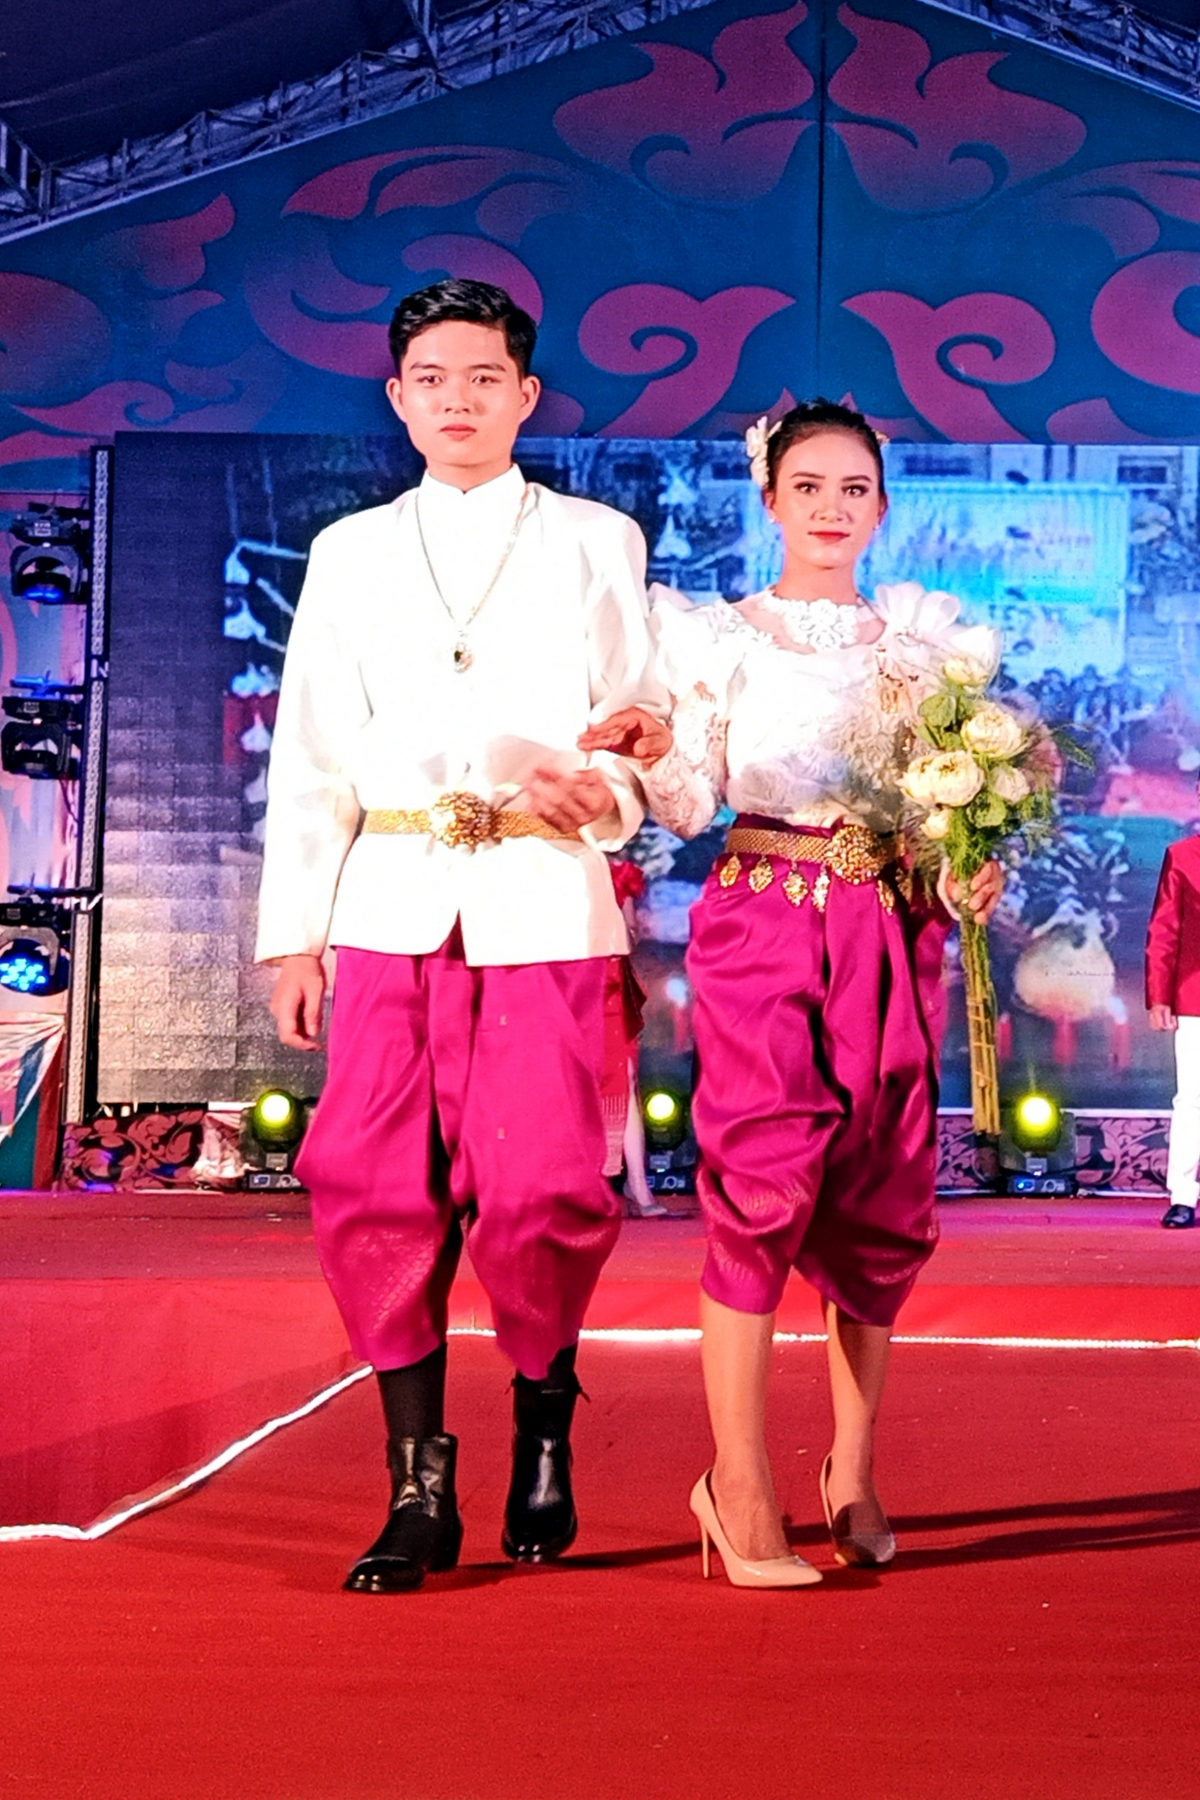 Khmer models don traditional evening outfits on stage at the event.